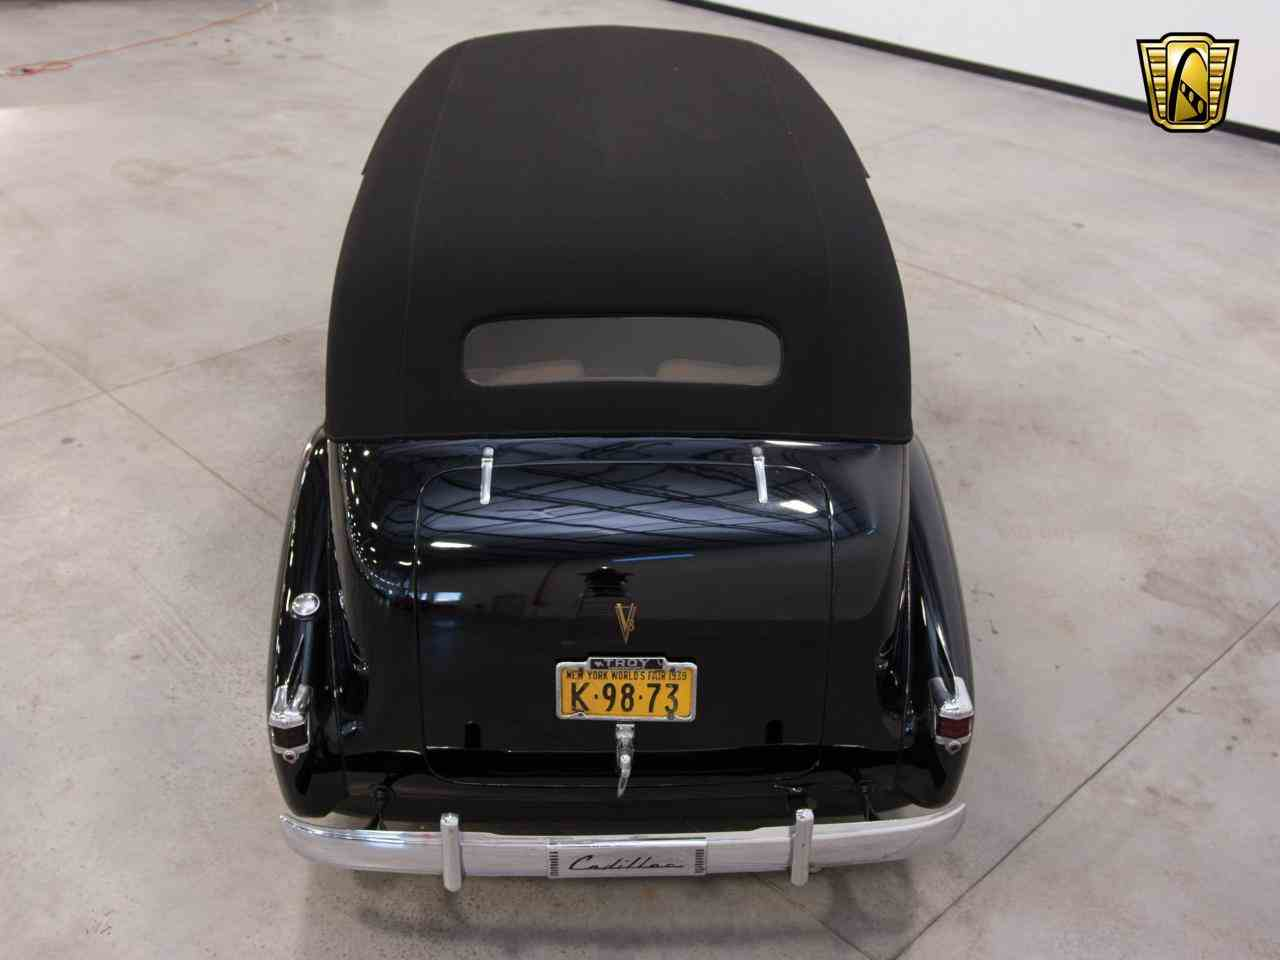 Large Picture of Classic 1939 Cadillac 7 Passenger Touring W/ Trunk Offered by Gateway Classic Cars - Milwaukee - KHP0